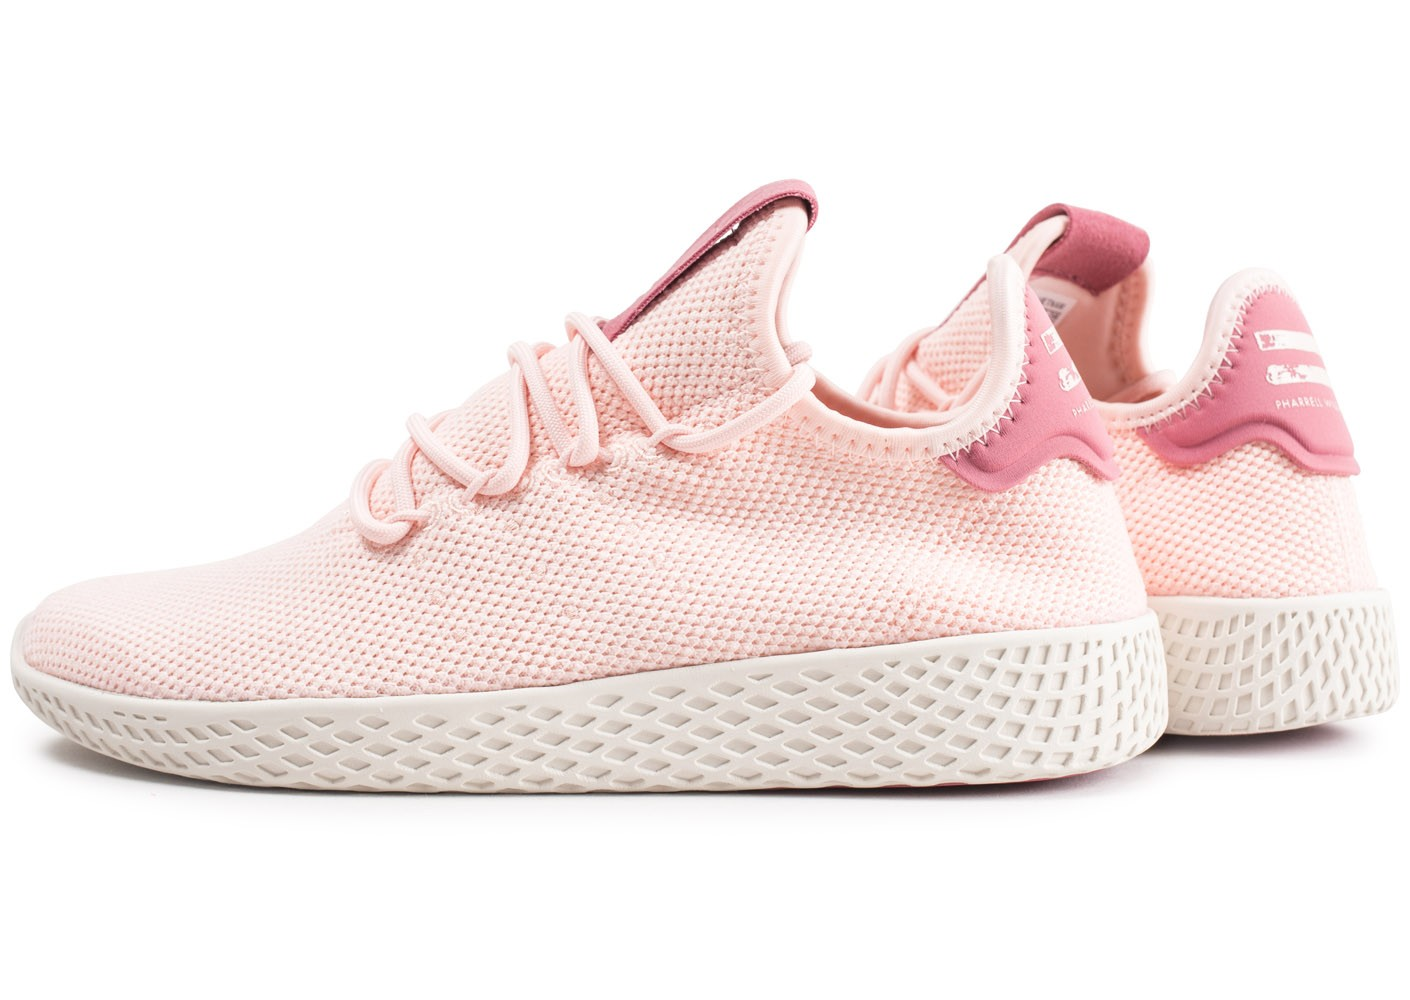 adidas Pharrell Williams Tennis Hu rose femme - Chaussures ...